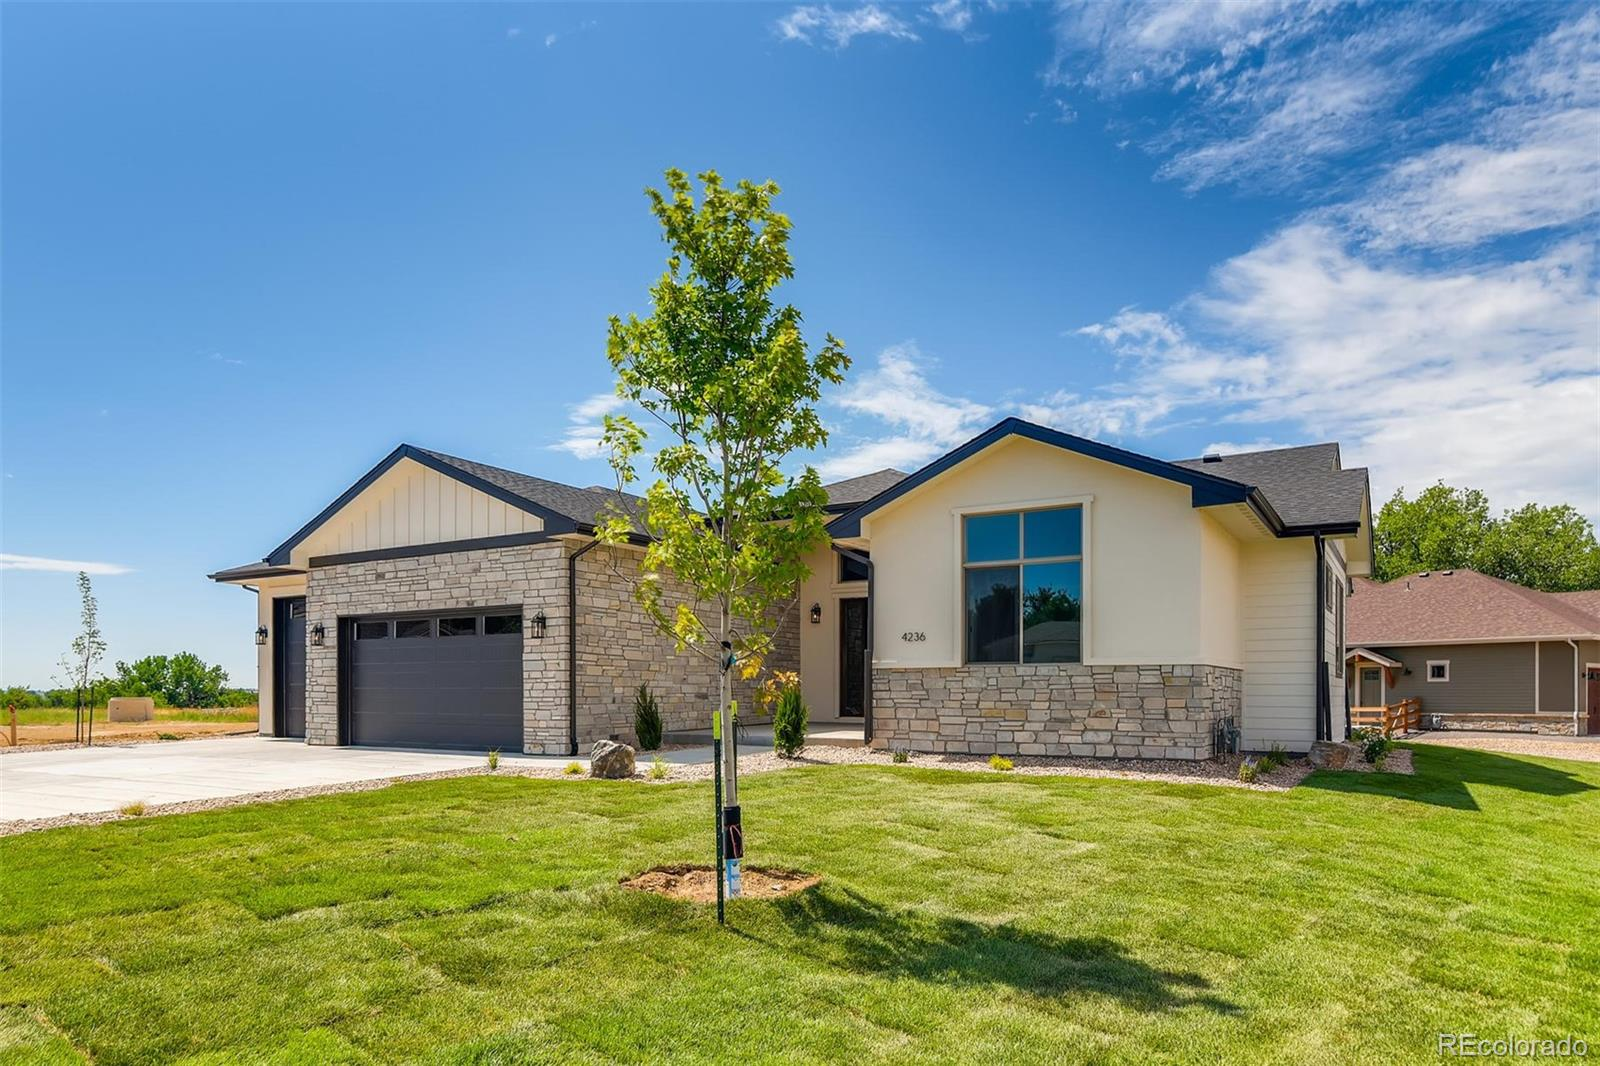 4236 Carroway Seed Court, Johnstown, CO 80534 - Johnstown, CO real estate listing